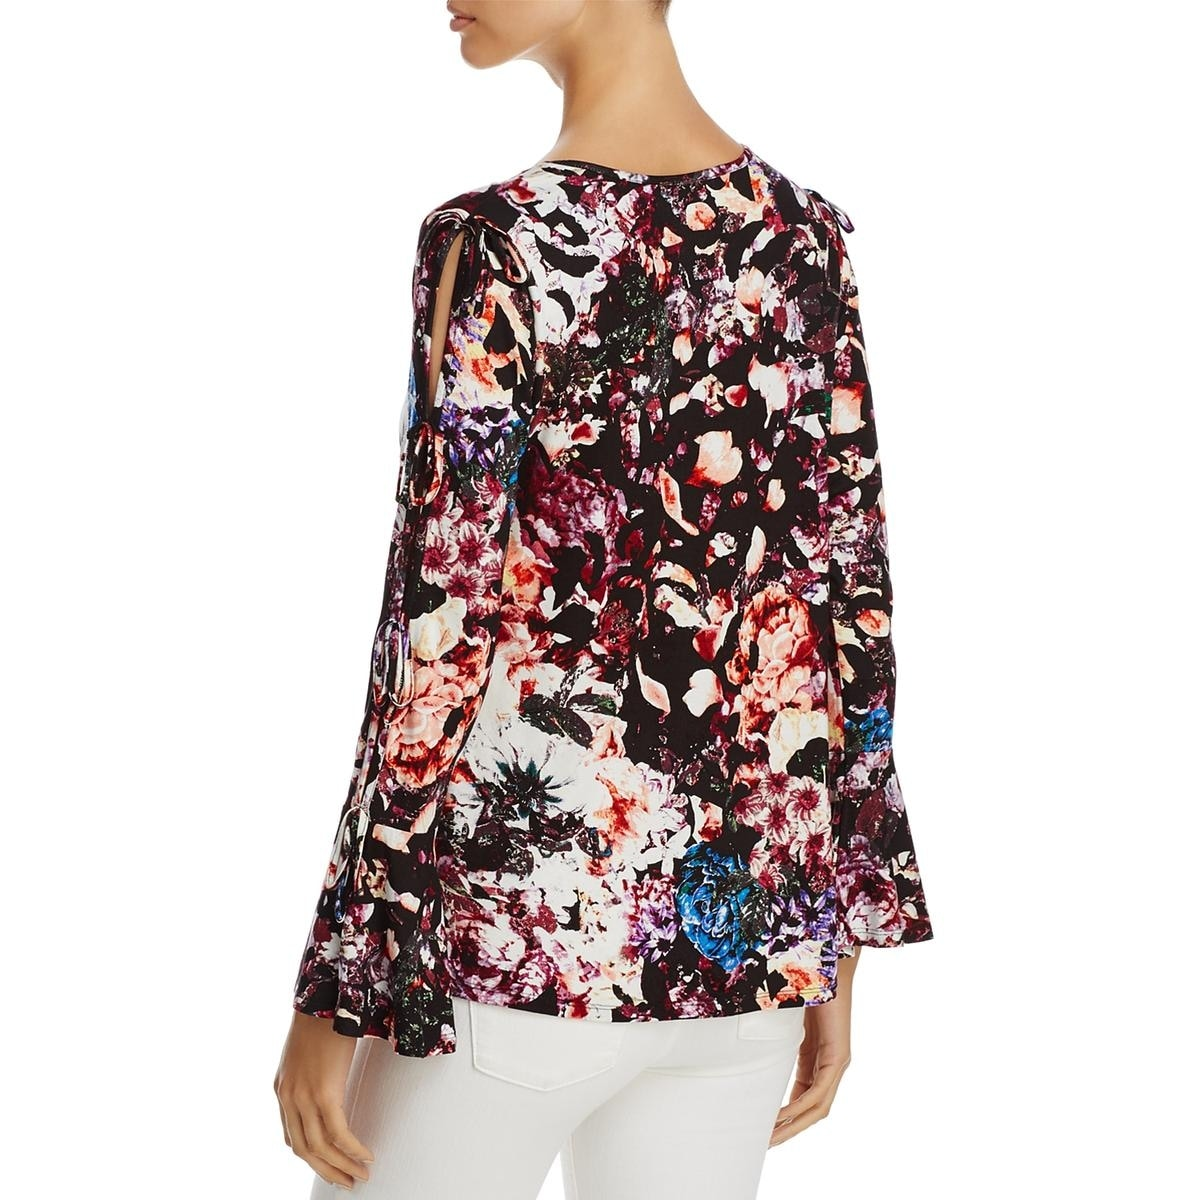 8be2c12396d Shop Cupio Womens Casual Top Floral Print Cold Shoulder - Free Shipping On  Orders Over  45 - Overstock.com - 23139162